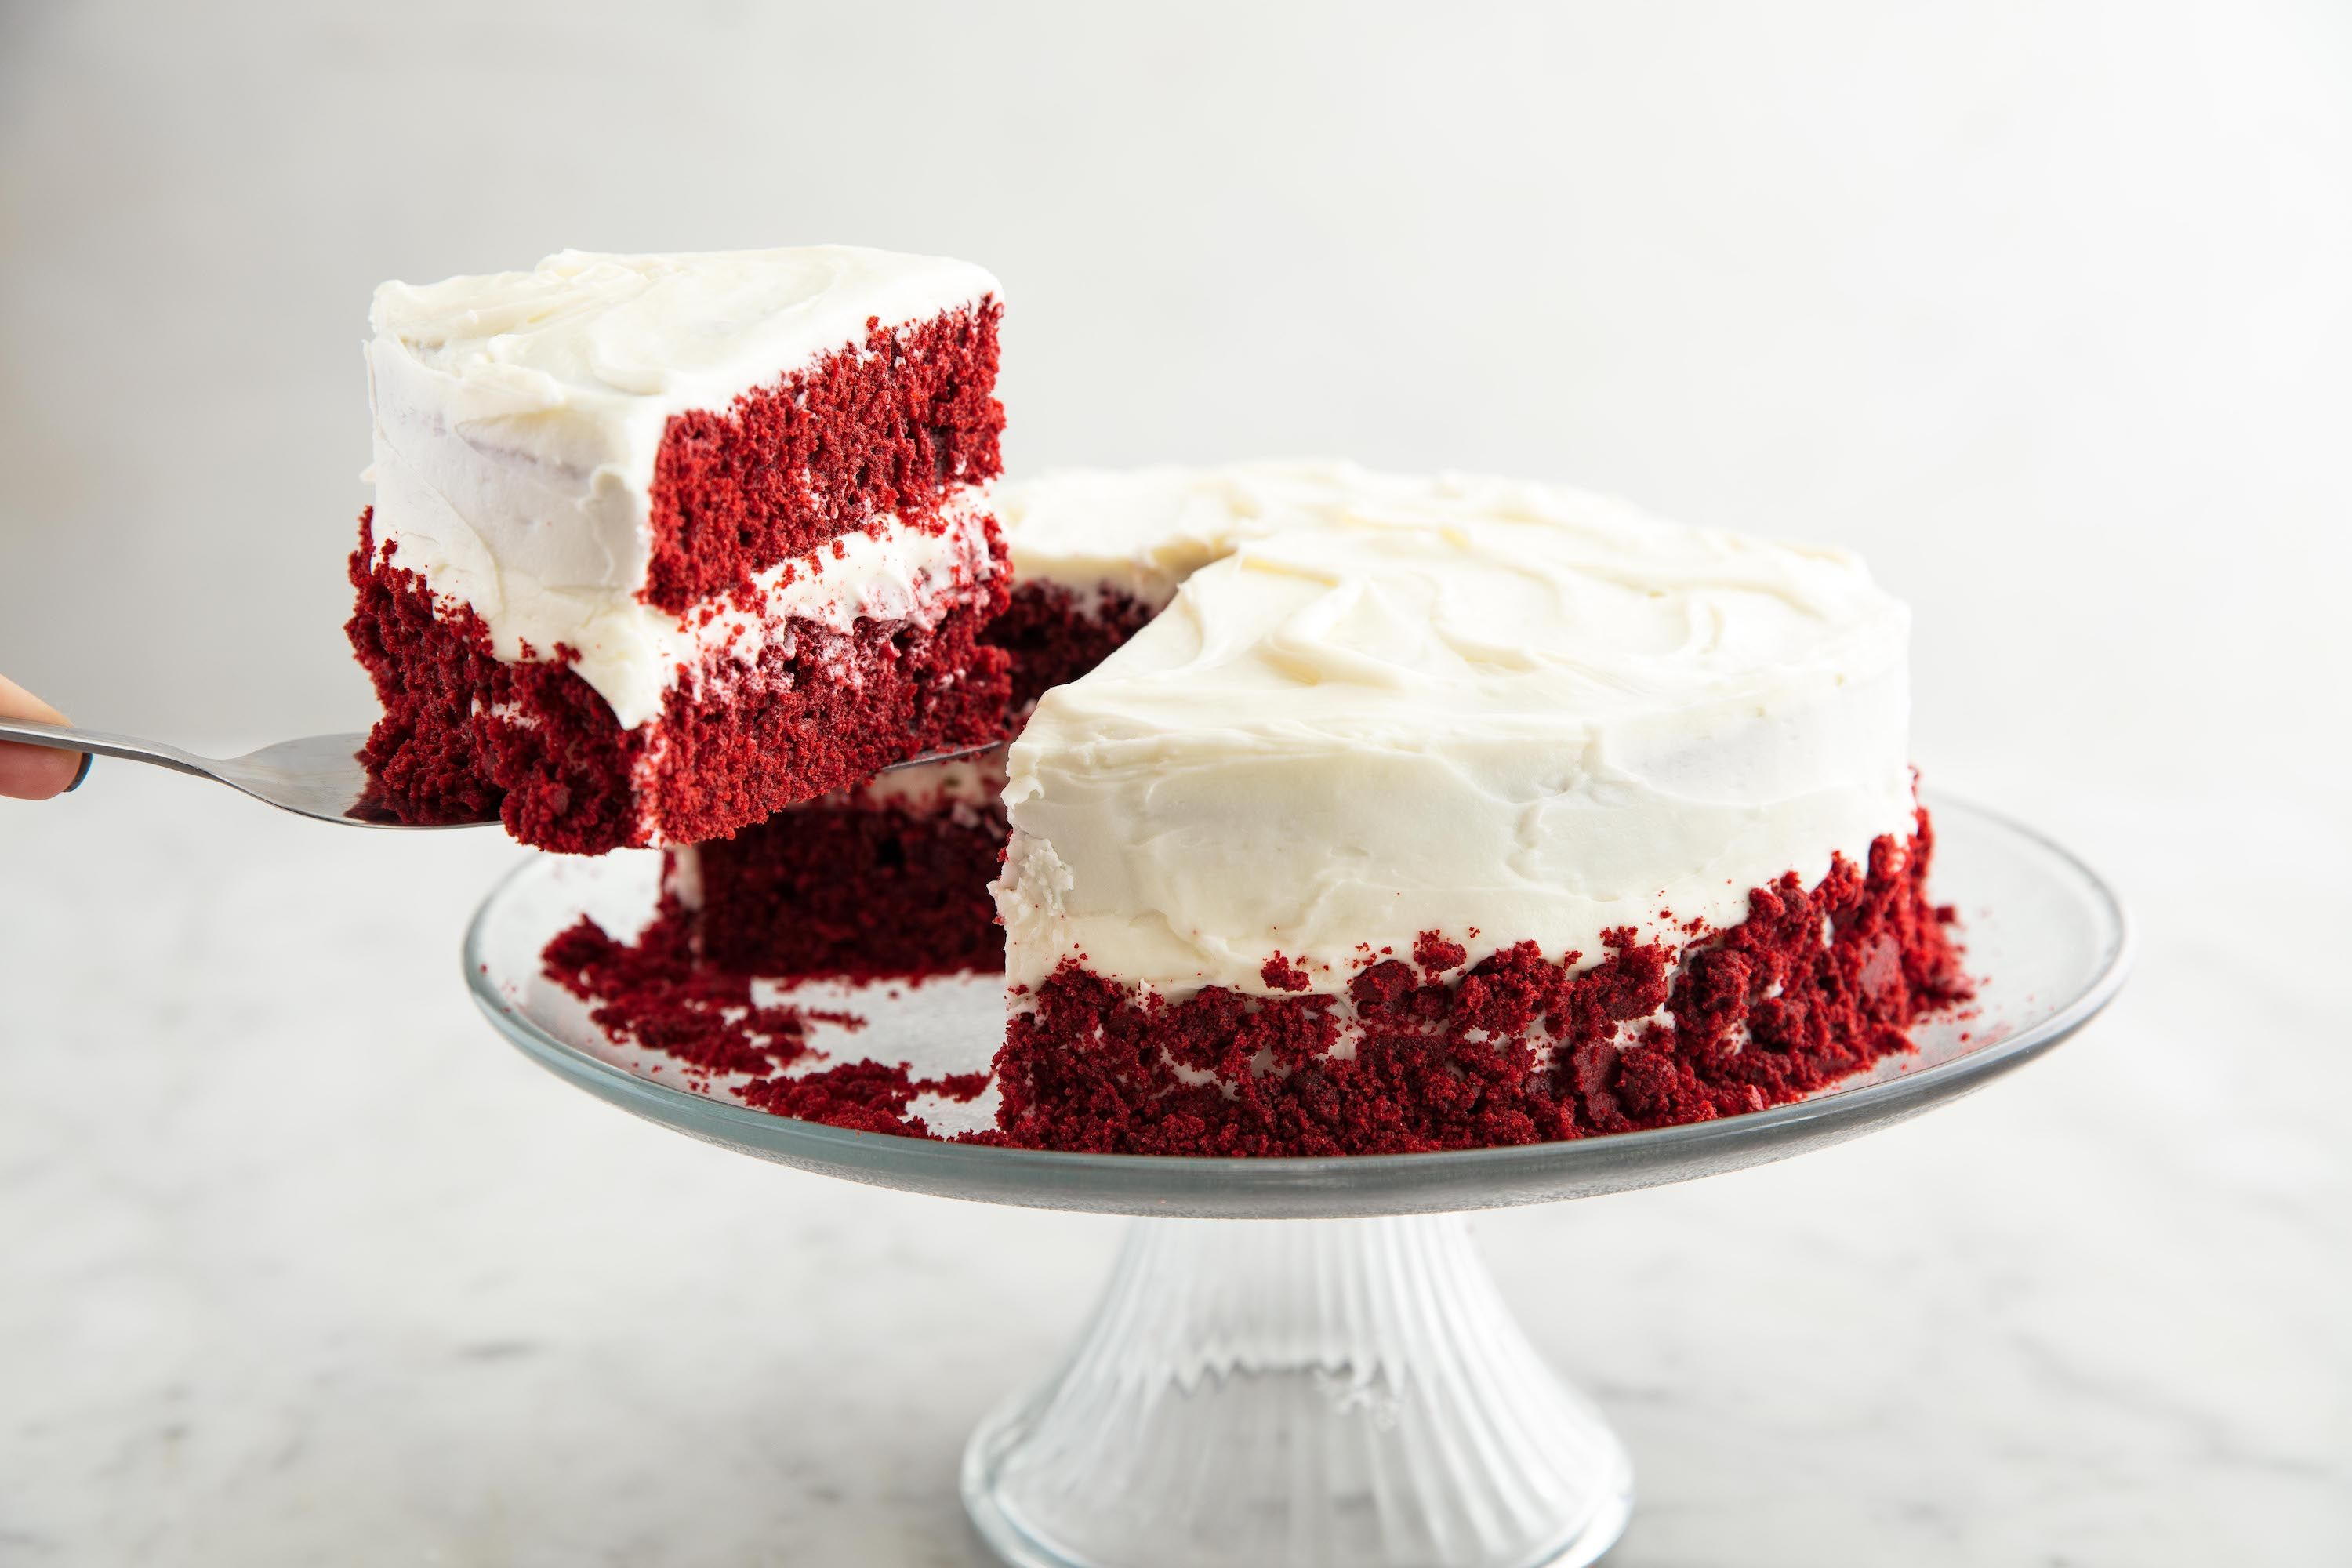 Most decadent christmas desserts for gifts